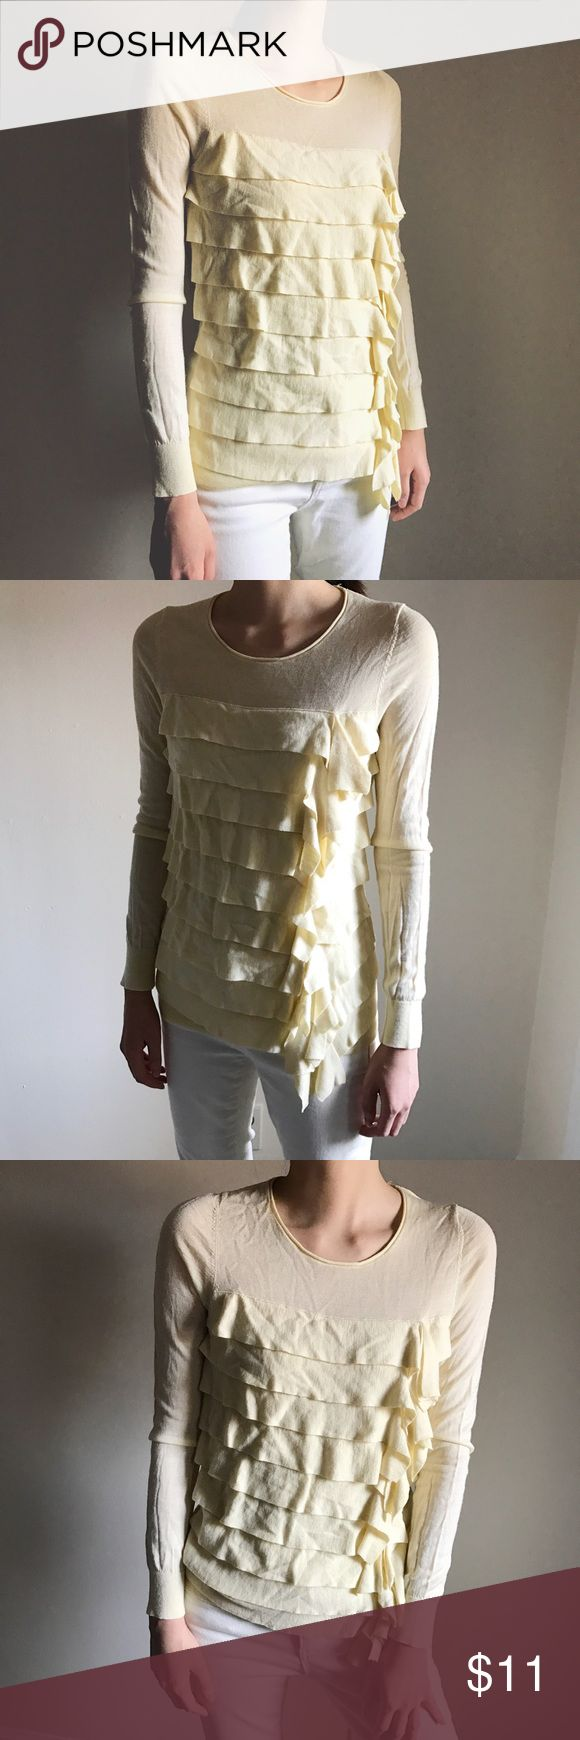 Ann Taylor summer ruffle sweater in cream yellow Ann Taylor summer ruffle sweater in cream yellow Size: SP (Petite Small)   #anntaylor #ruffle #detailed #details #cream #creamyellow #yellow #knit #sweater #spring #summer #vintage #vintagesweater #modern Ann Taylor Sweaters Crew & Scoop Necks